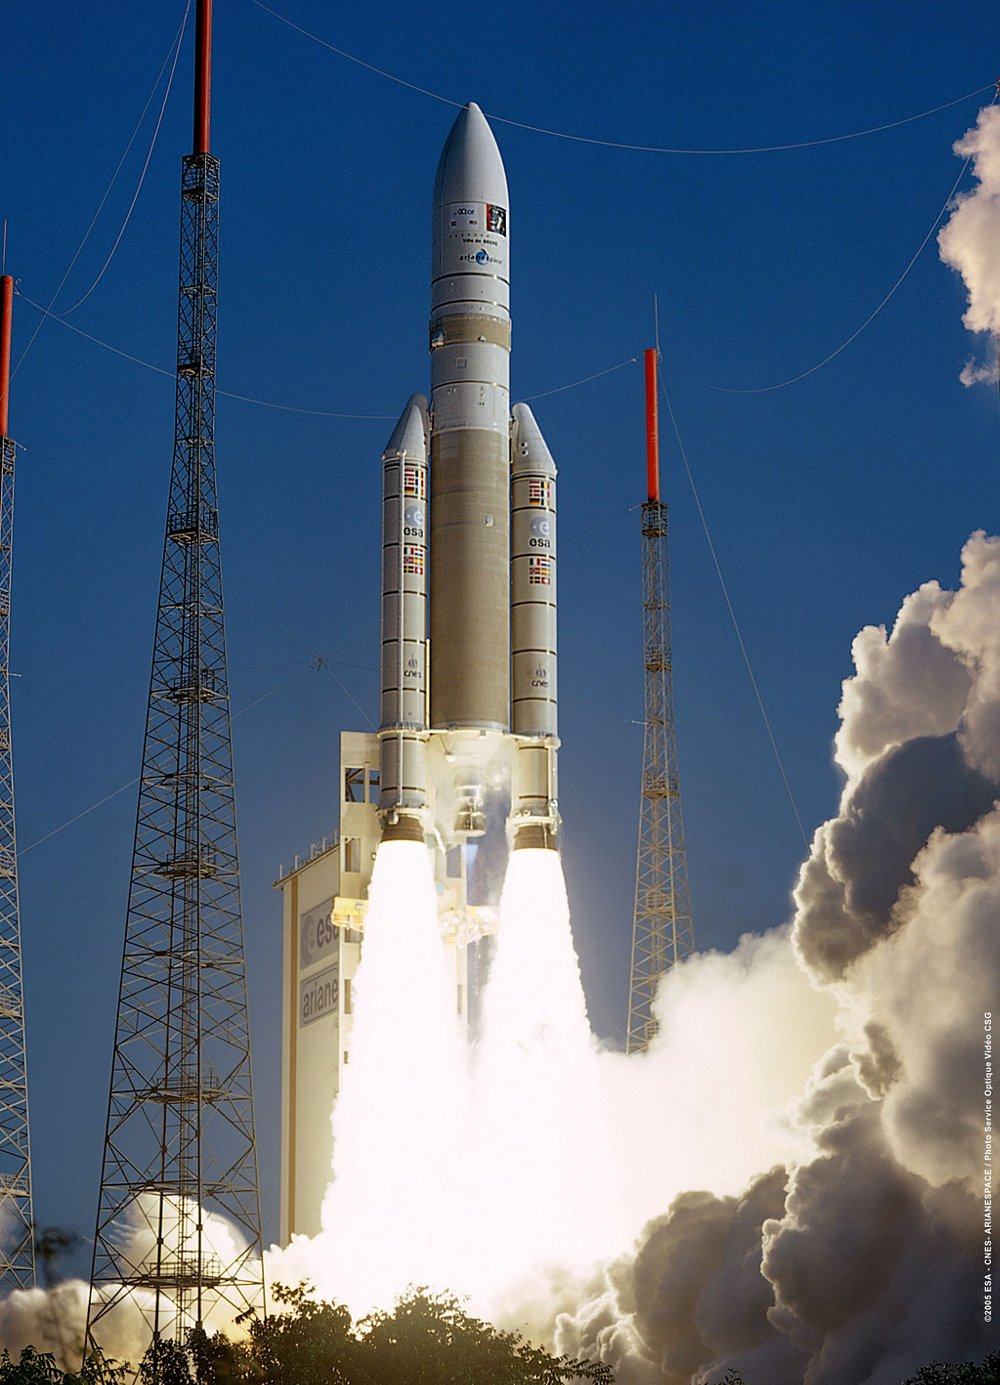 An Ariane 5 lifts off from the Spaceport in French Guiana, where this heavy-lift launch vehicle is operated by Arianespace.